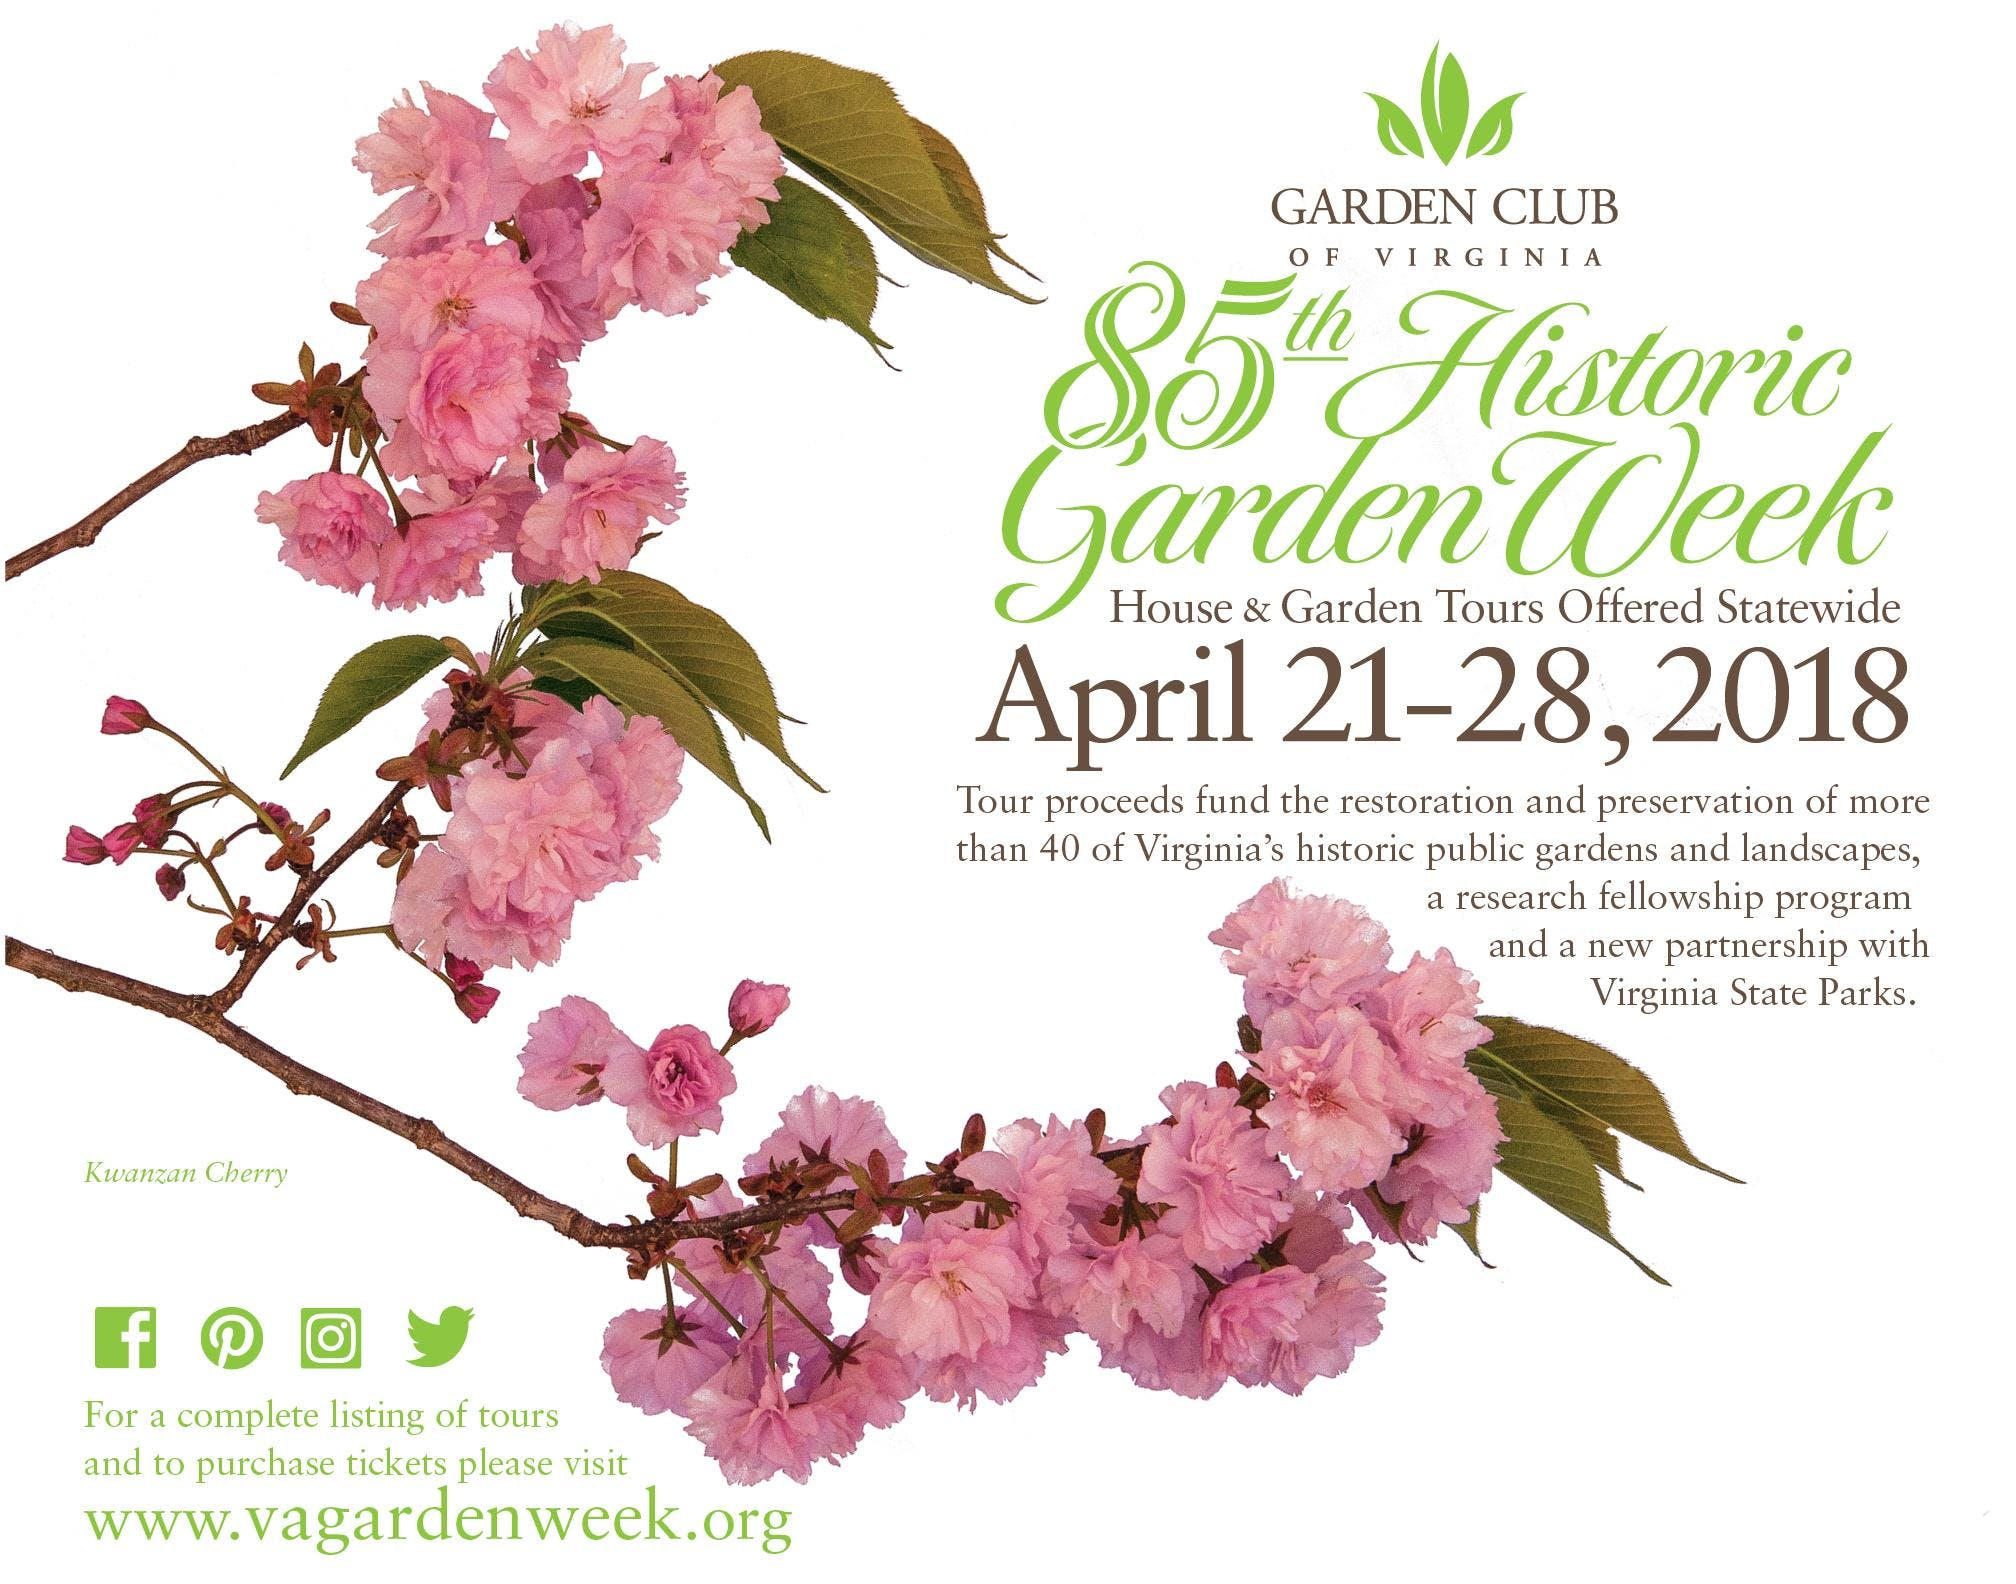 85th Historic Garden Week